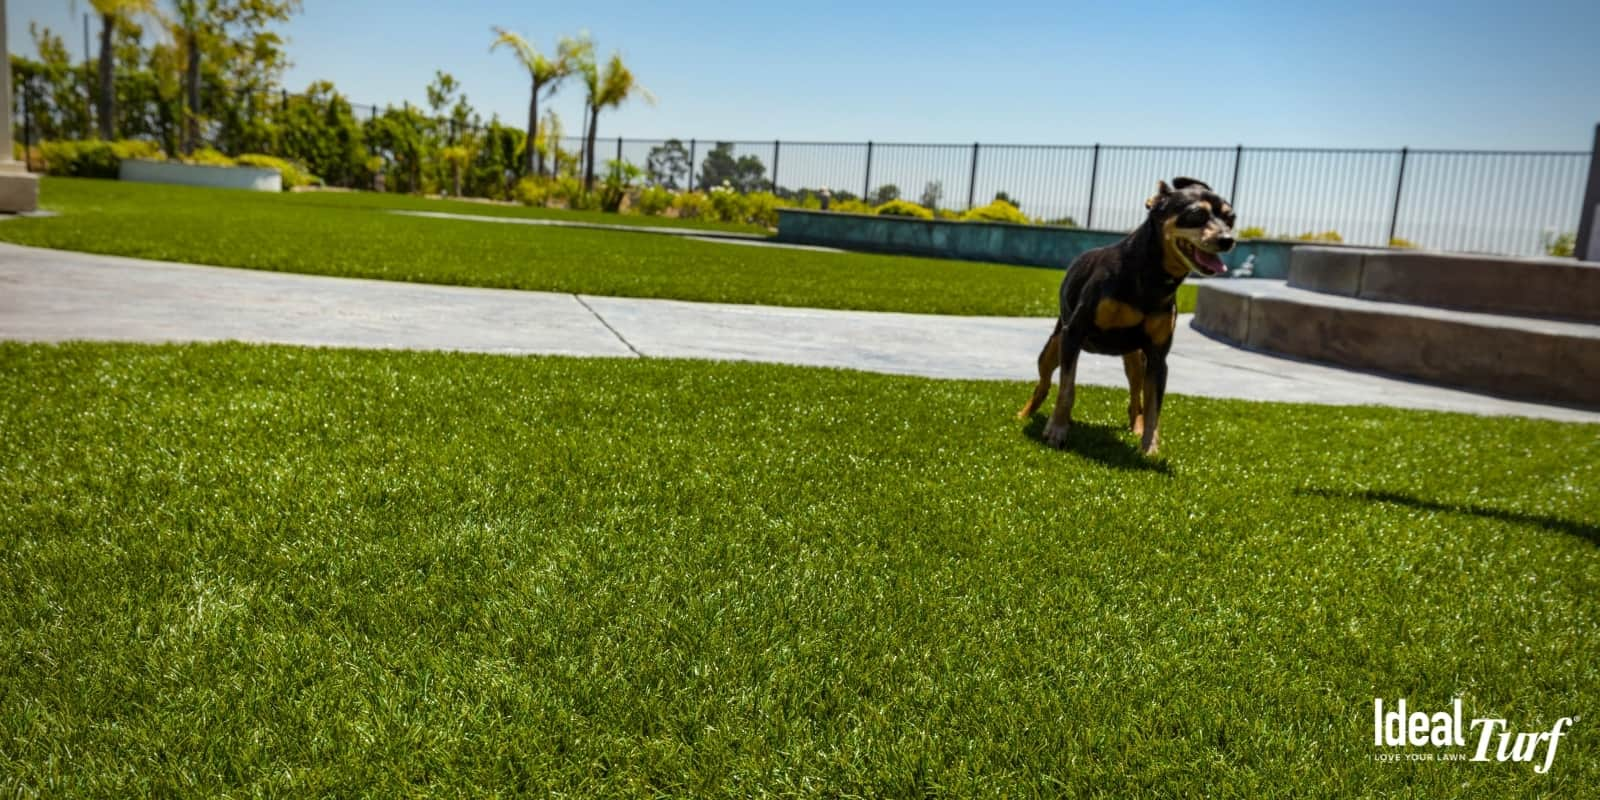 Dog standing on artificial grass in a dog-friendly backyard